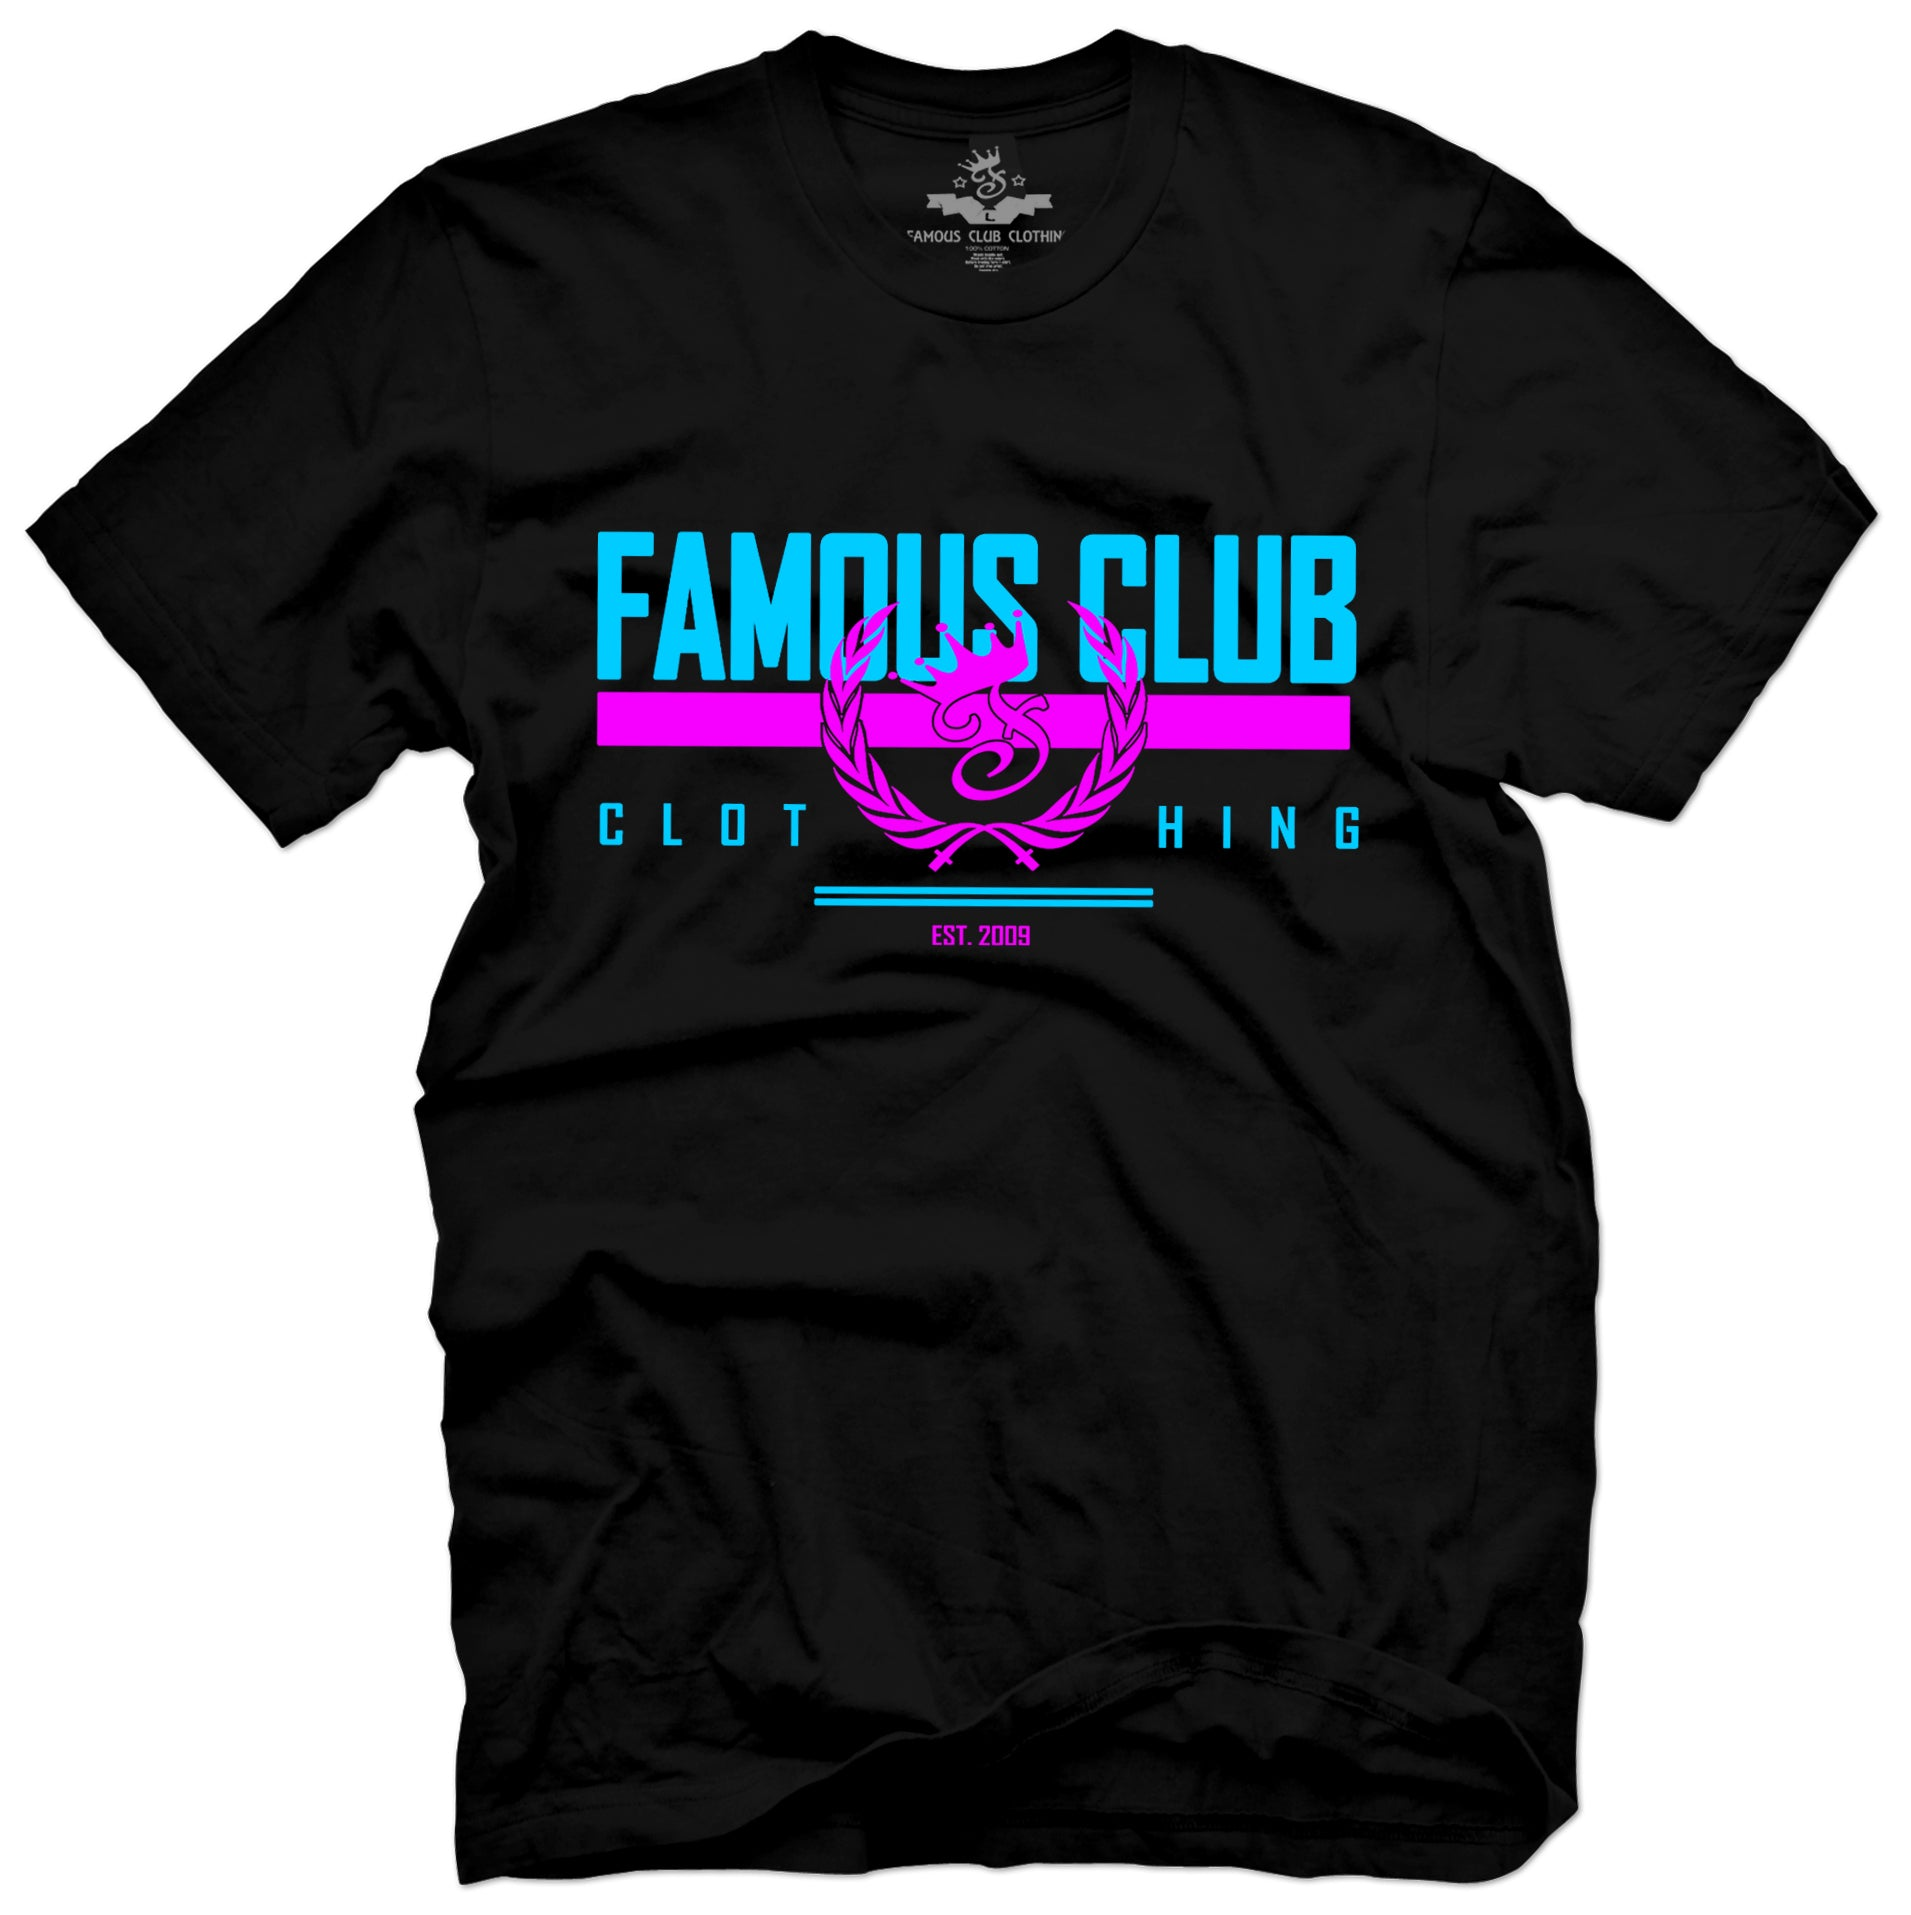 Miami Stamp Tee Black - Famous Club Clothing